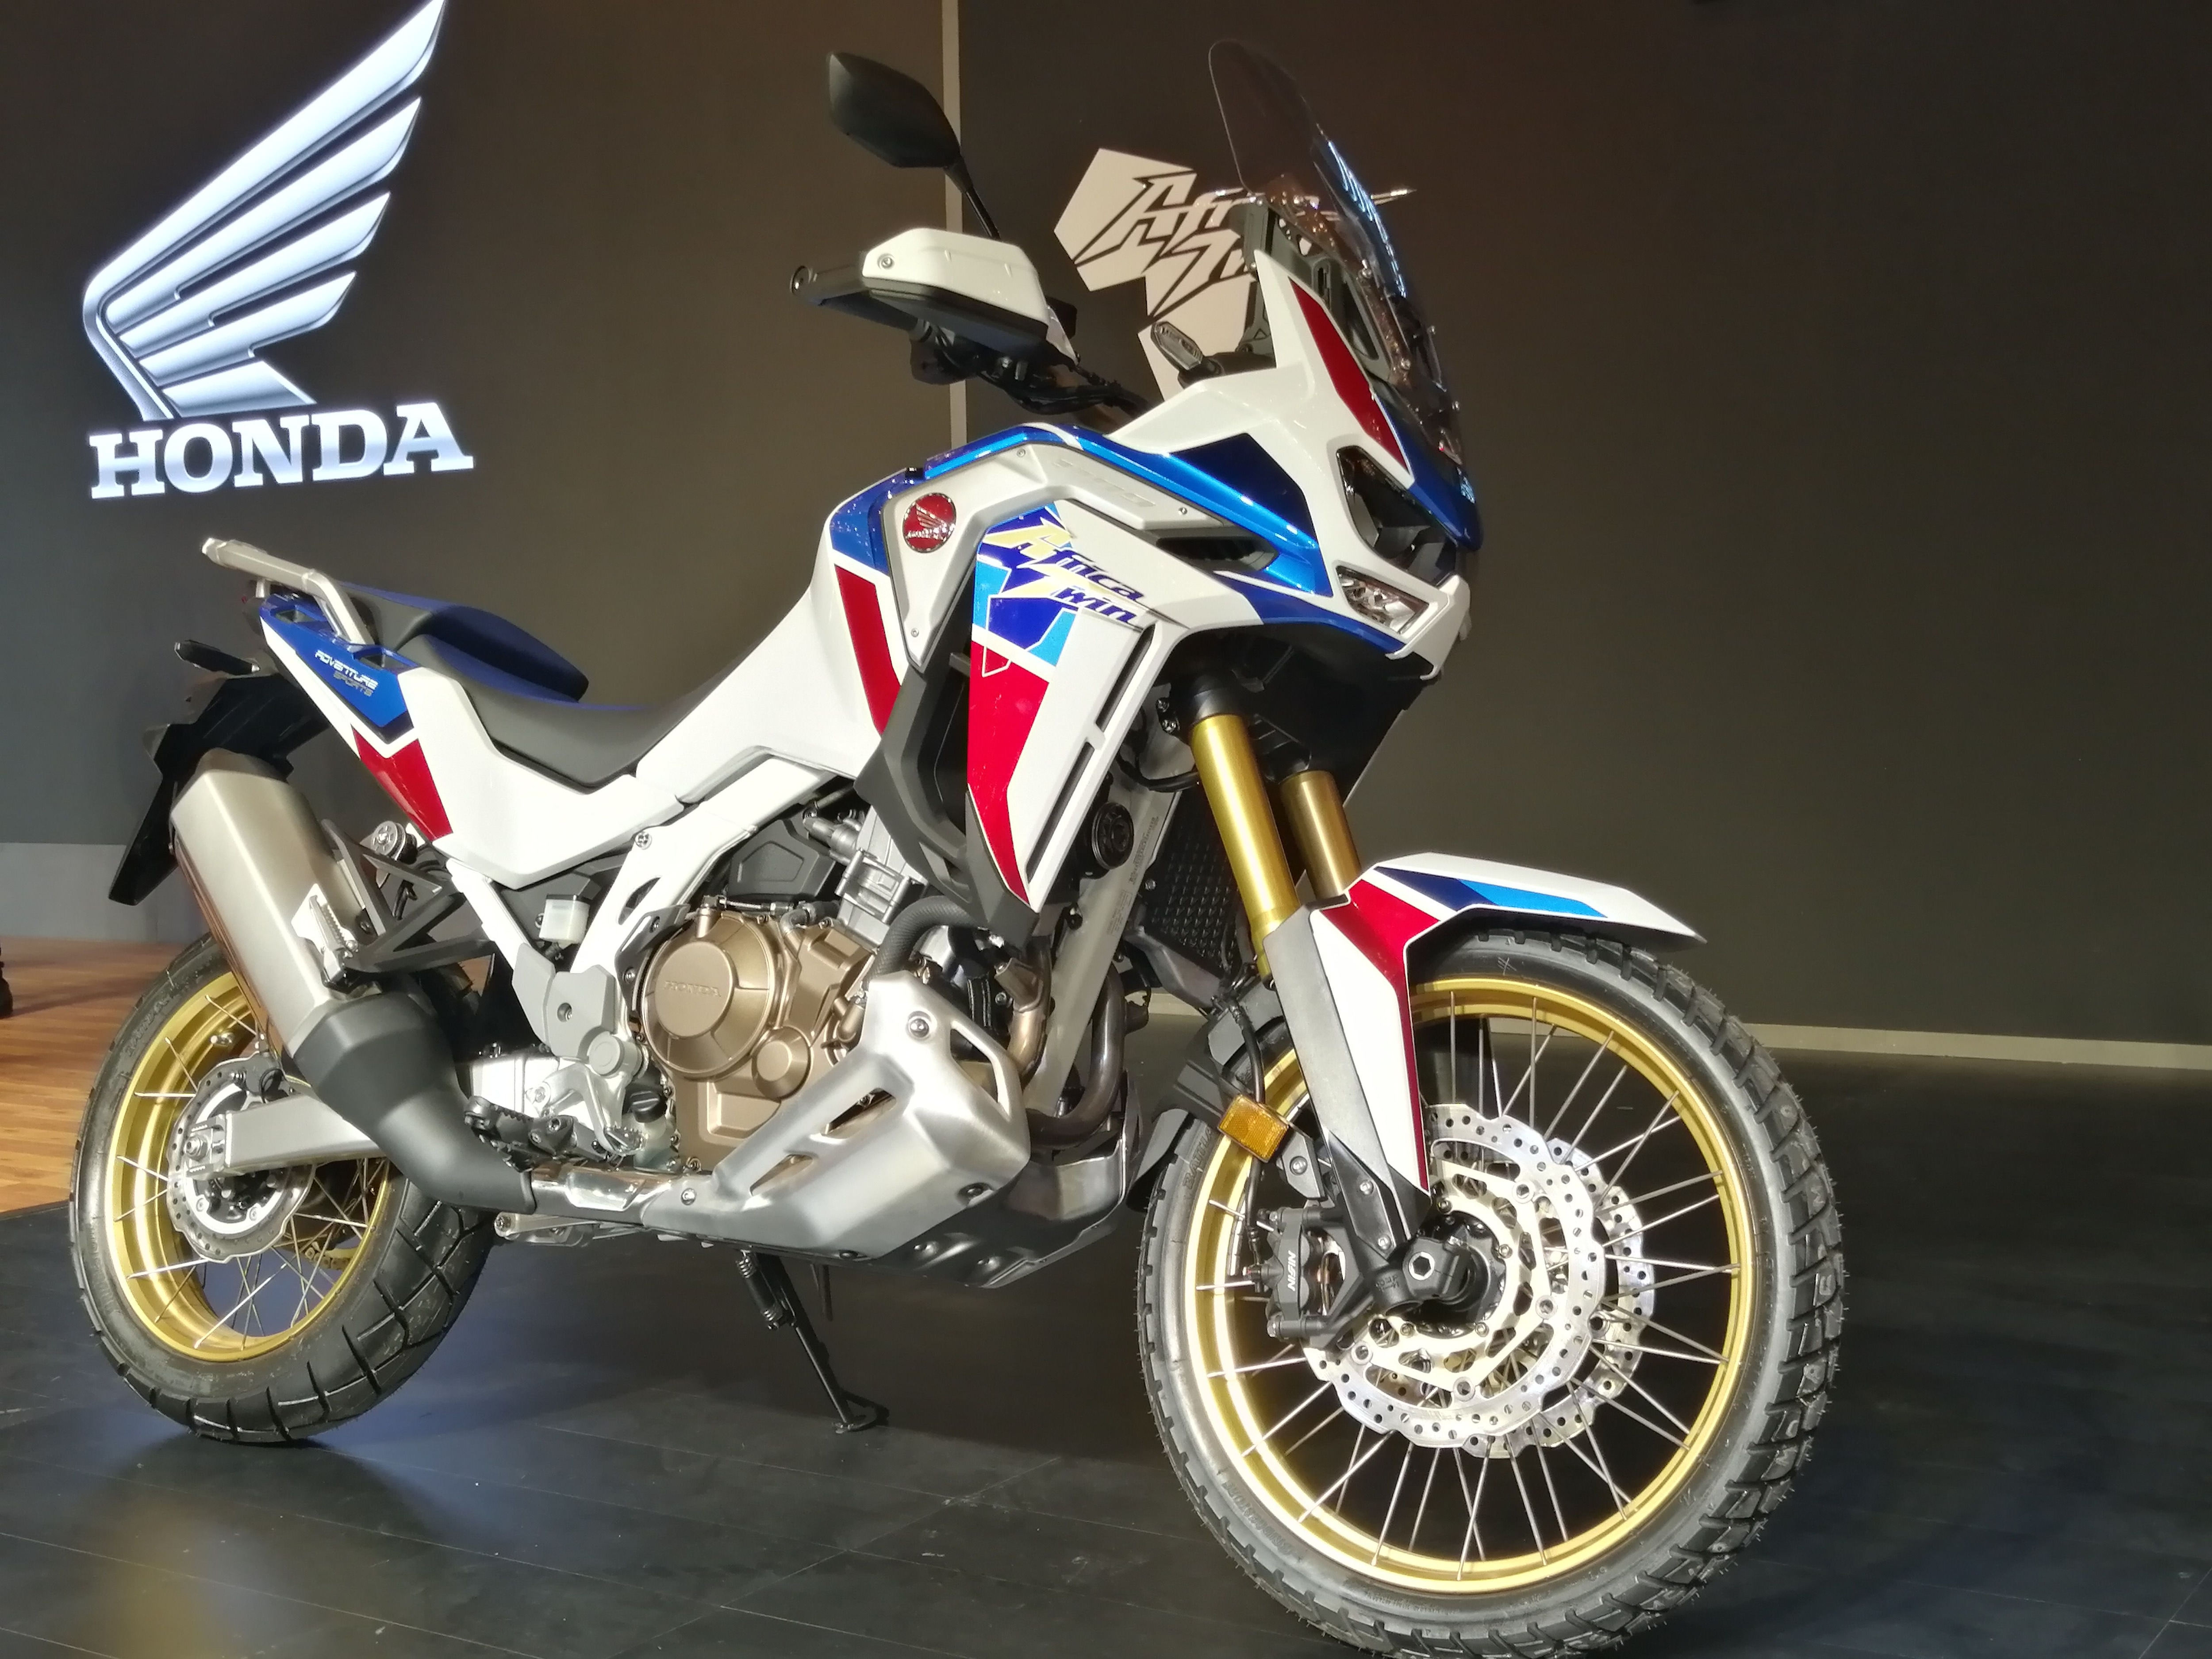 Honda has launched Africa Twin Adventure Sports 2020 in India. The prices start at  <span class='webrupee'>₹</span>15.35 lakh and extend up to  <span class='webrupee'>₹</span>16.10 lakh.